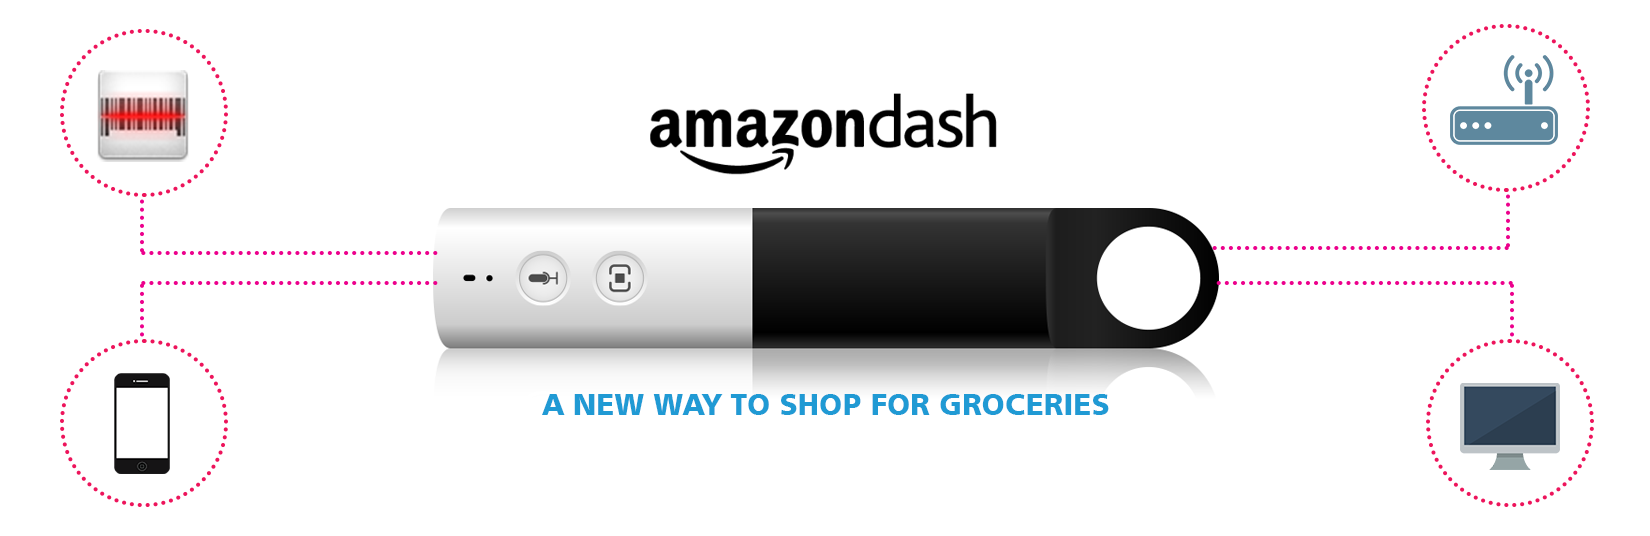 Amazon's Dash - A New Way to Shop For Groceries